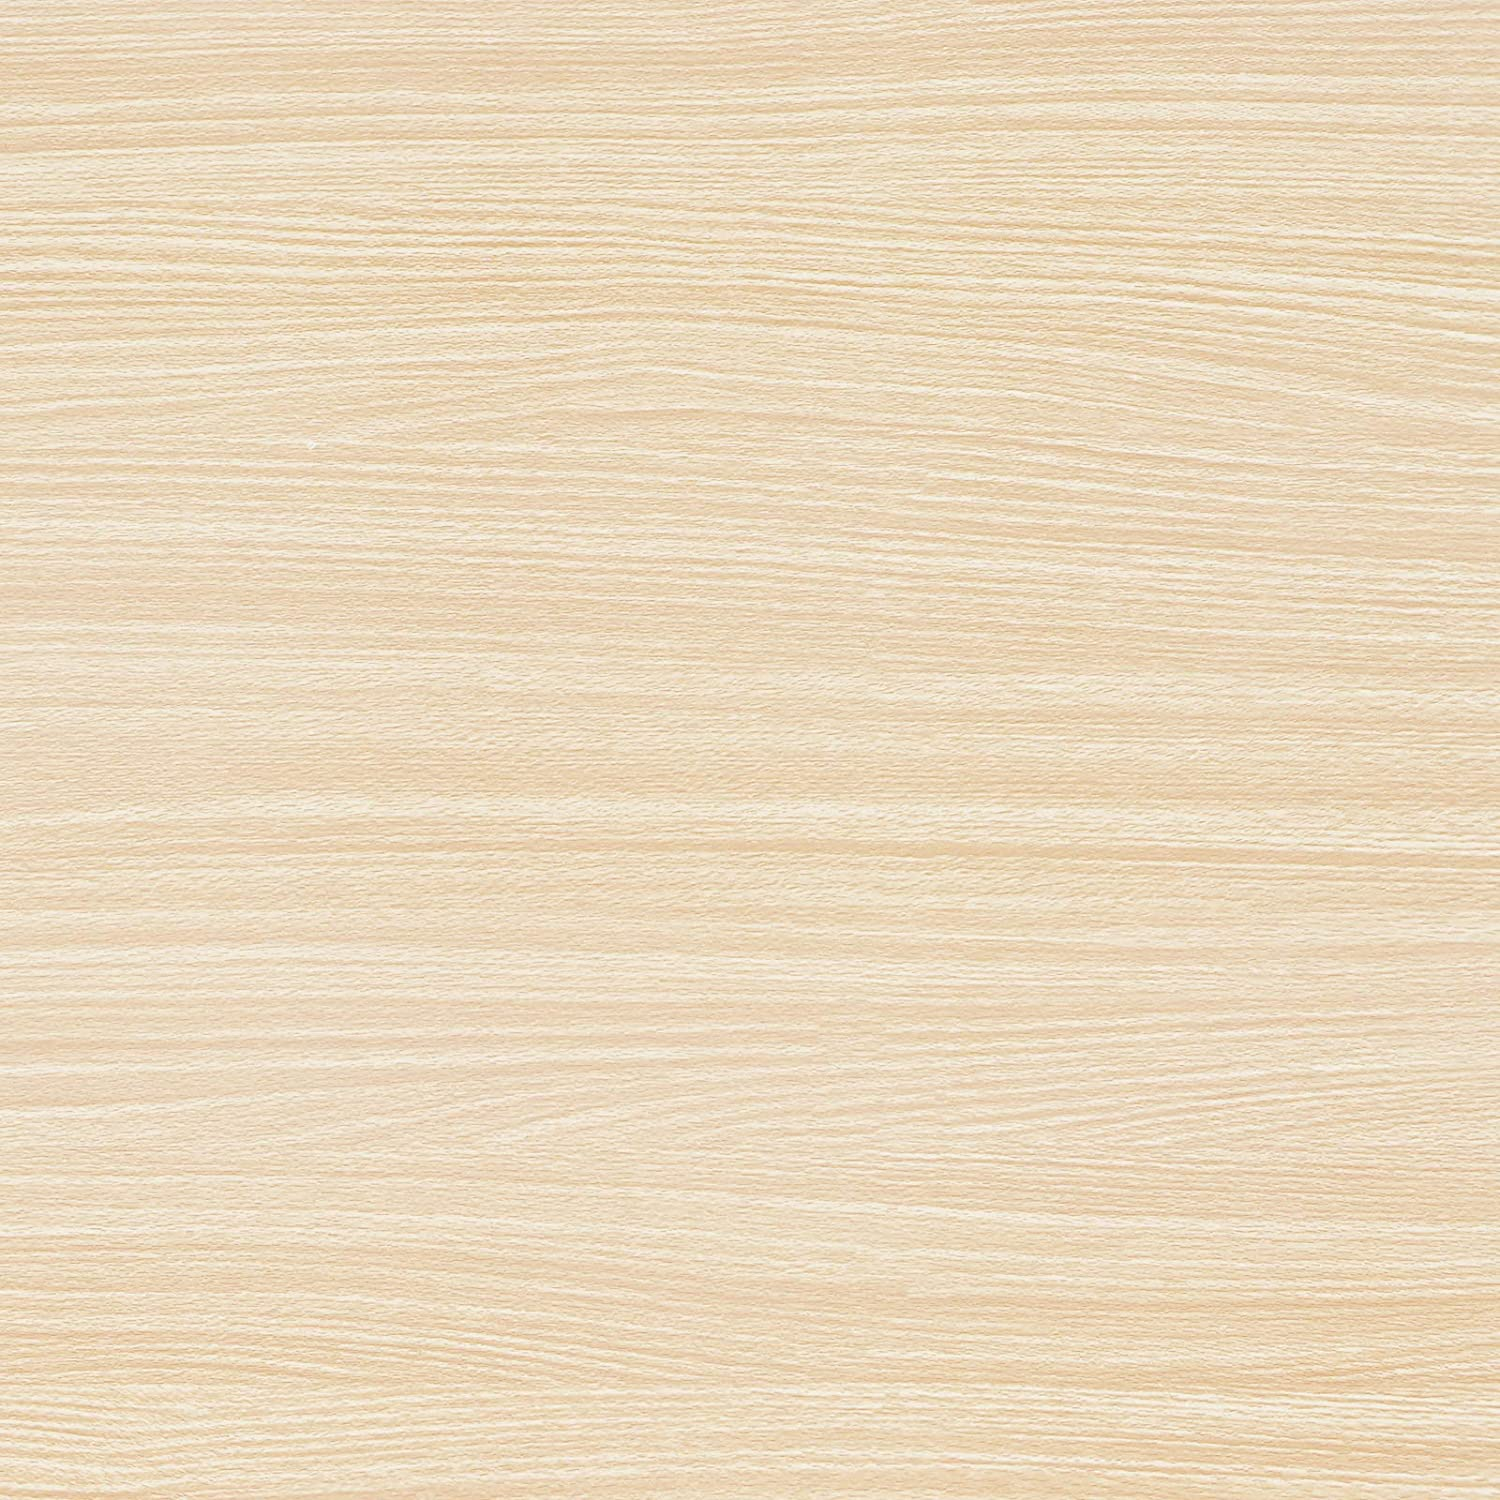 """Melwod Maple Wood Grain Peel and Stick Contact Paper 17.71"""" x 78.7"""" Removable Self-Adhesive Decorative Wood Wallpaper Waterproof Vinyl for Walls Kitchen Furniture Cabinets Countertop Crafts Shelves"""